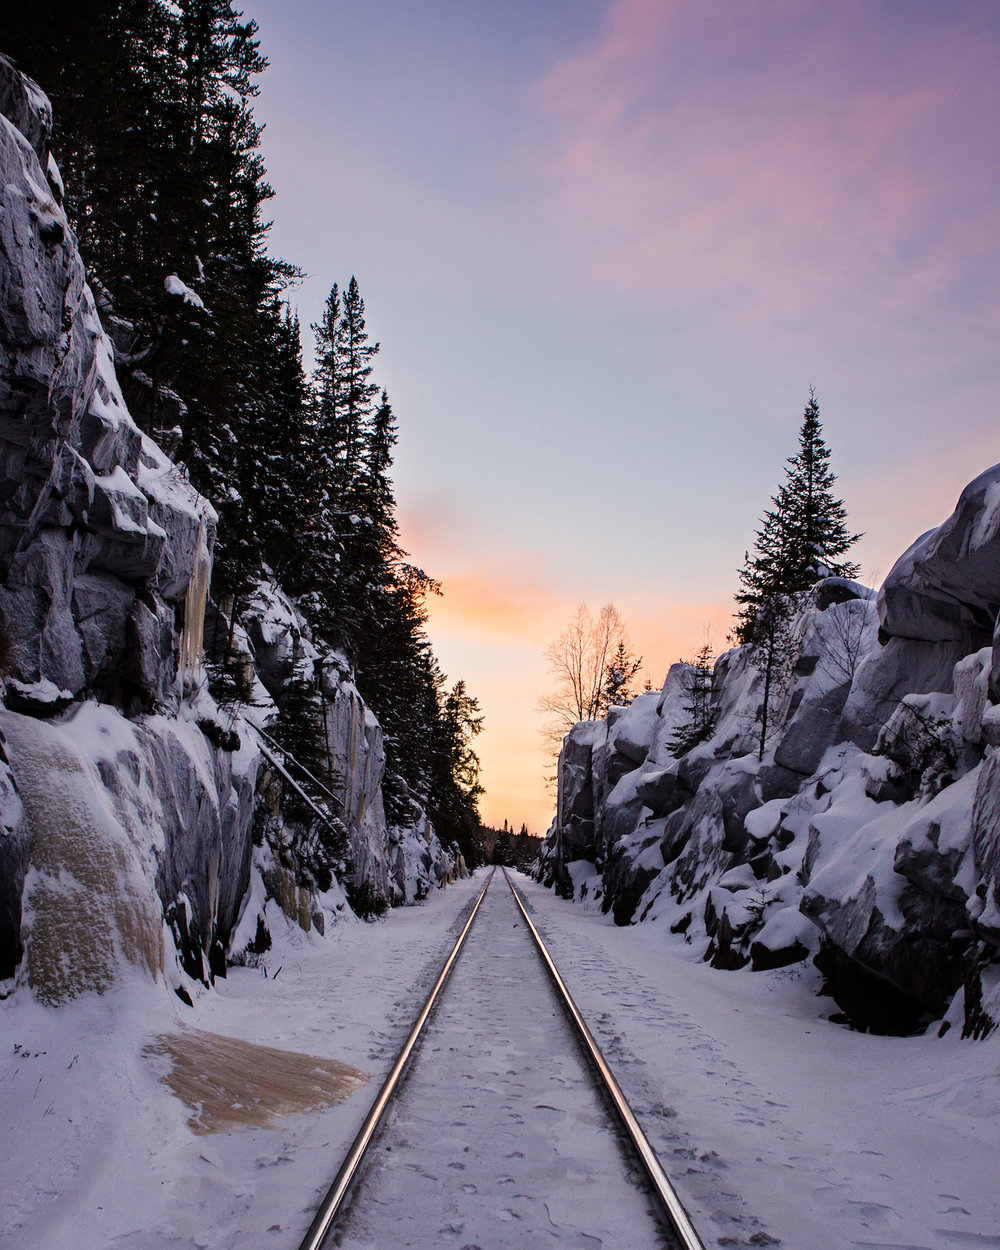 polar-visual-taylor-sheppard-photography-photo-video-motion-design-graphic-stonewall-winnipeg-manitoba-kenora-lotw-lake-of-the-woods-rail-line-way-train-sunset-sky-clouds-winter-hike-adventure.jpg